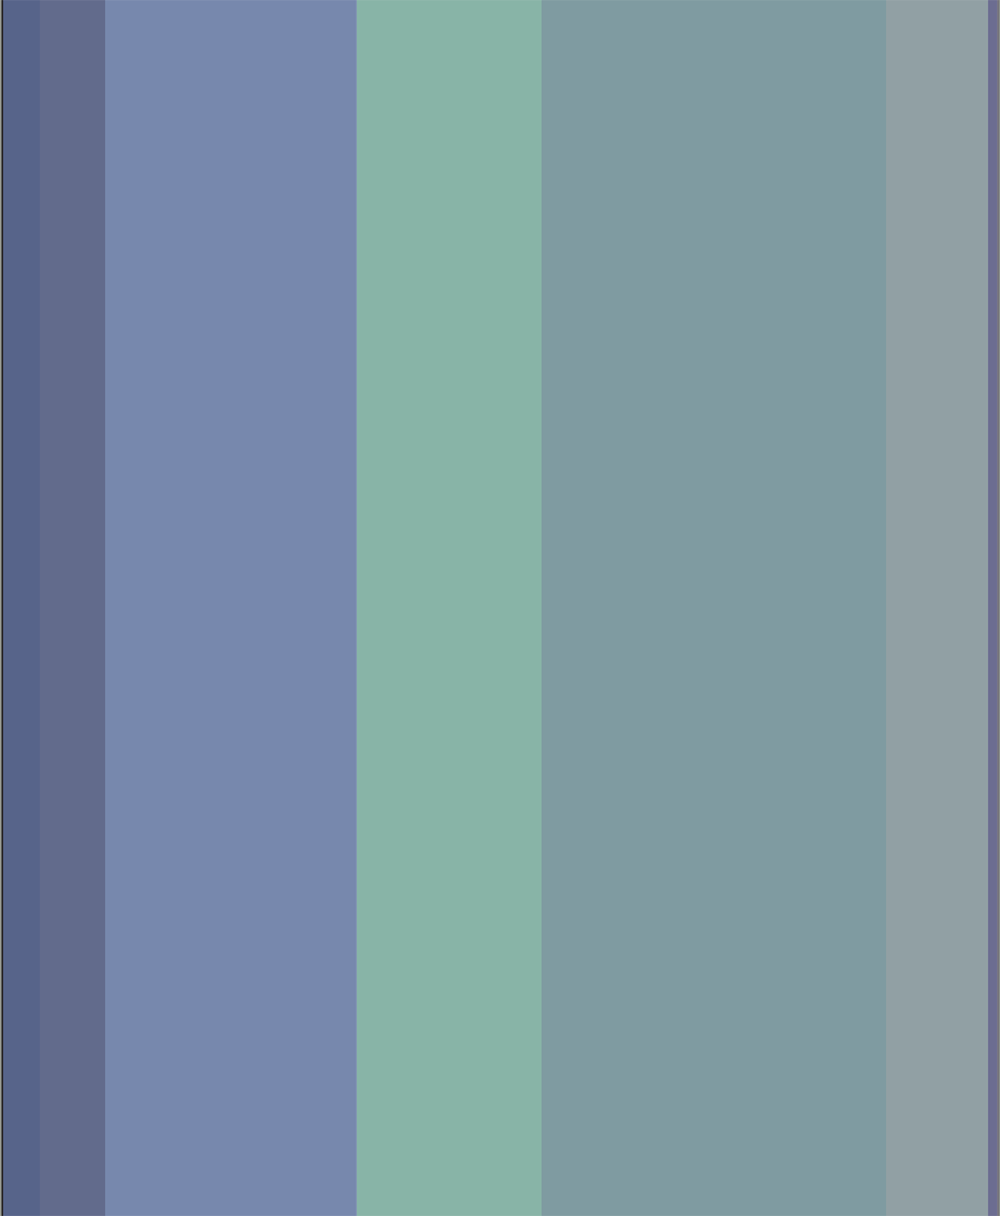 colours-20180605-sky.png